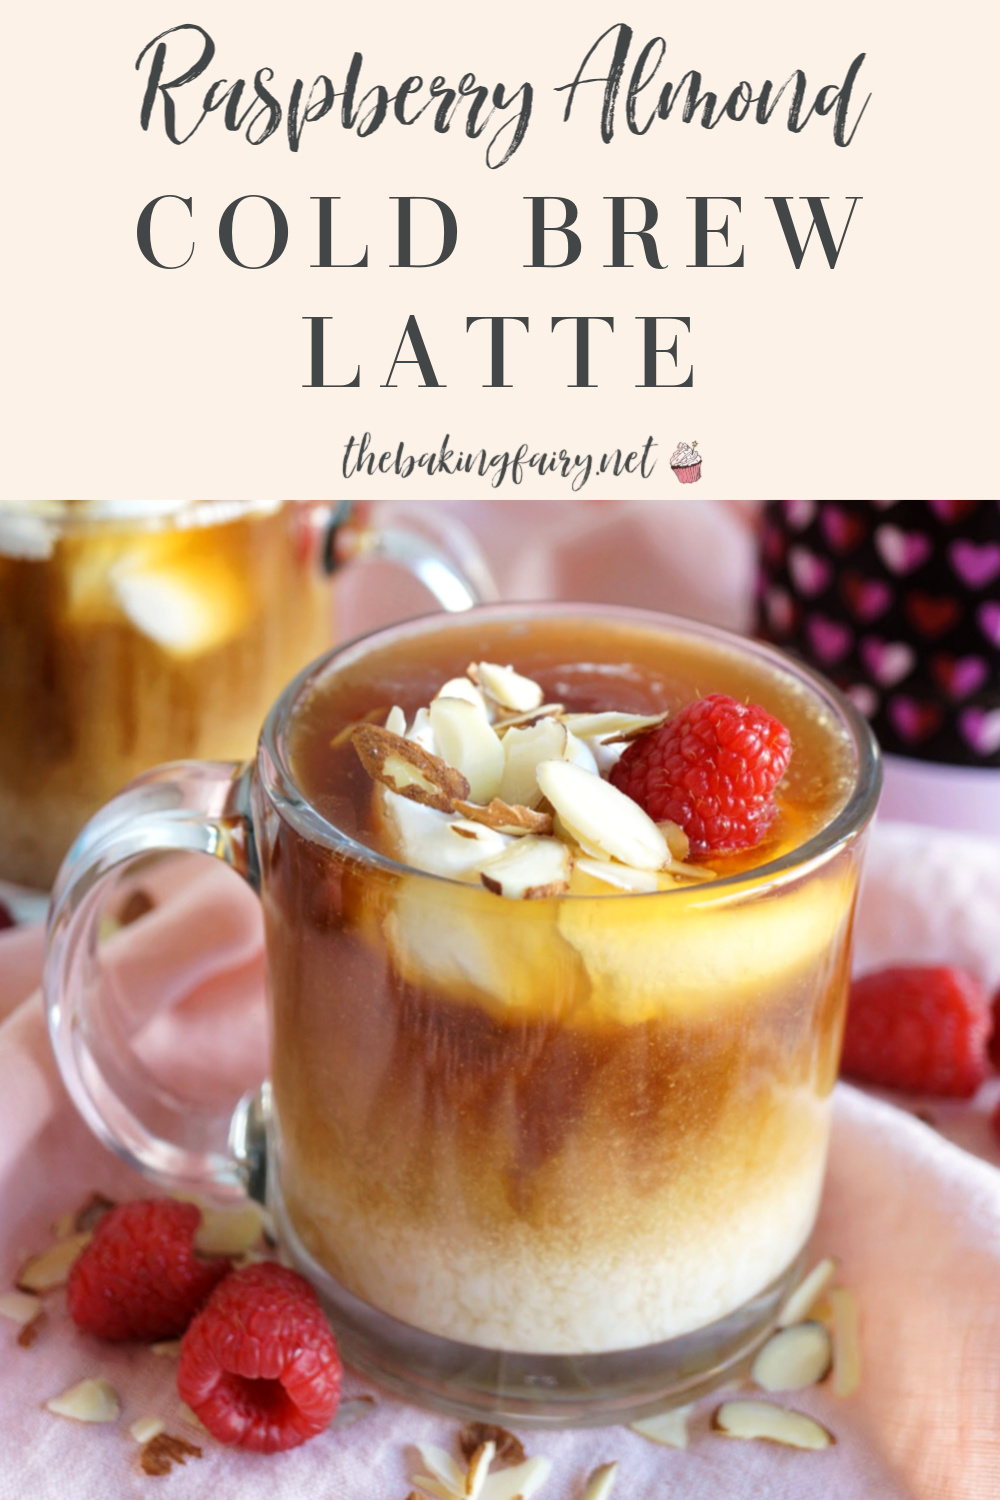 raspberry almond cold brew latte | The Baking Fairy #SpringSweetsWeek #ad